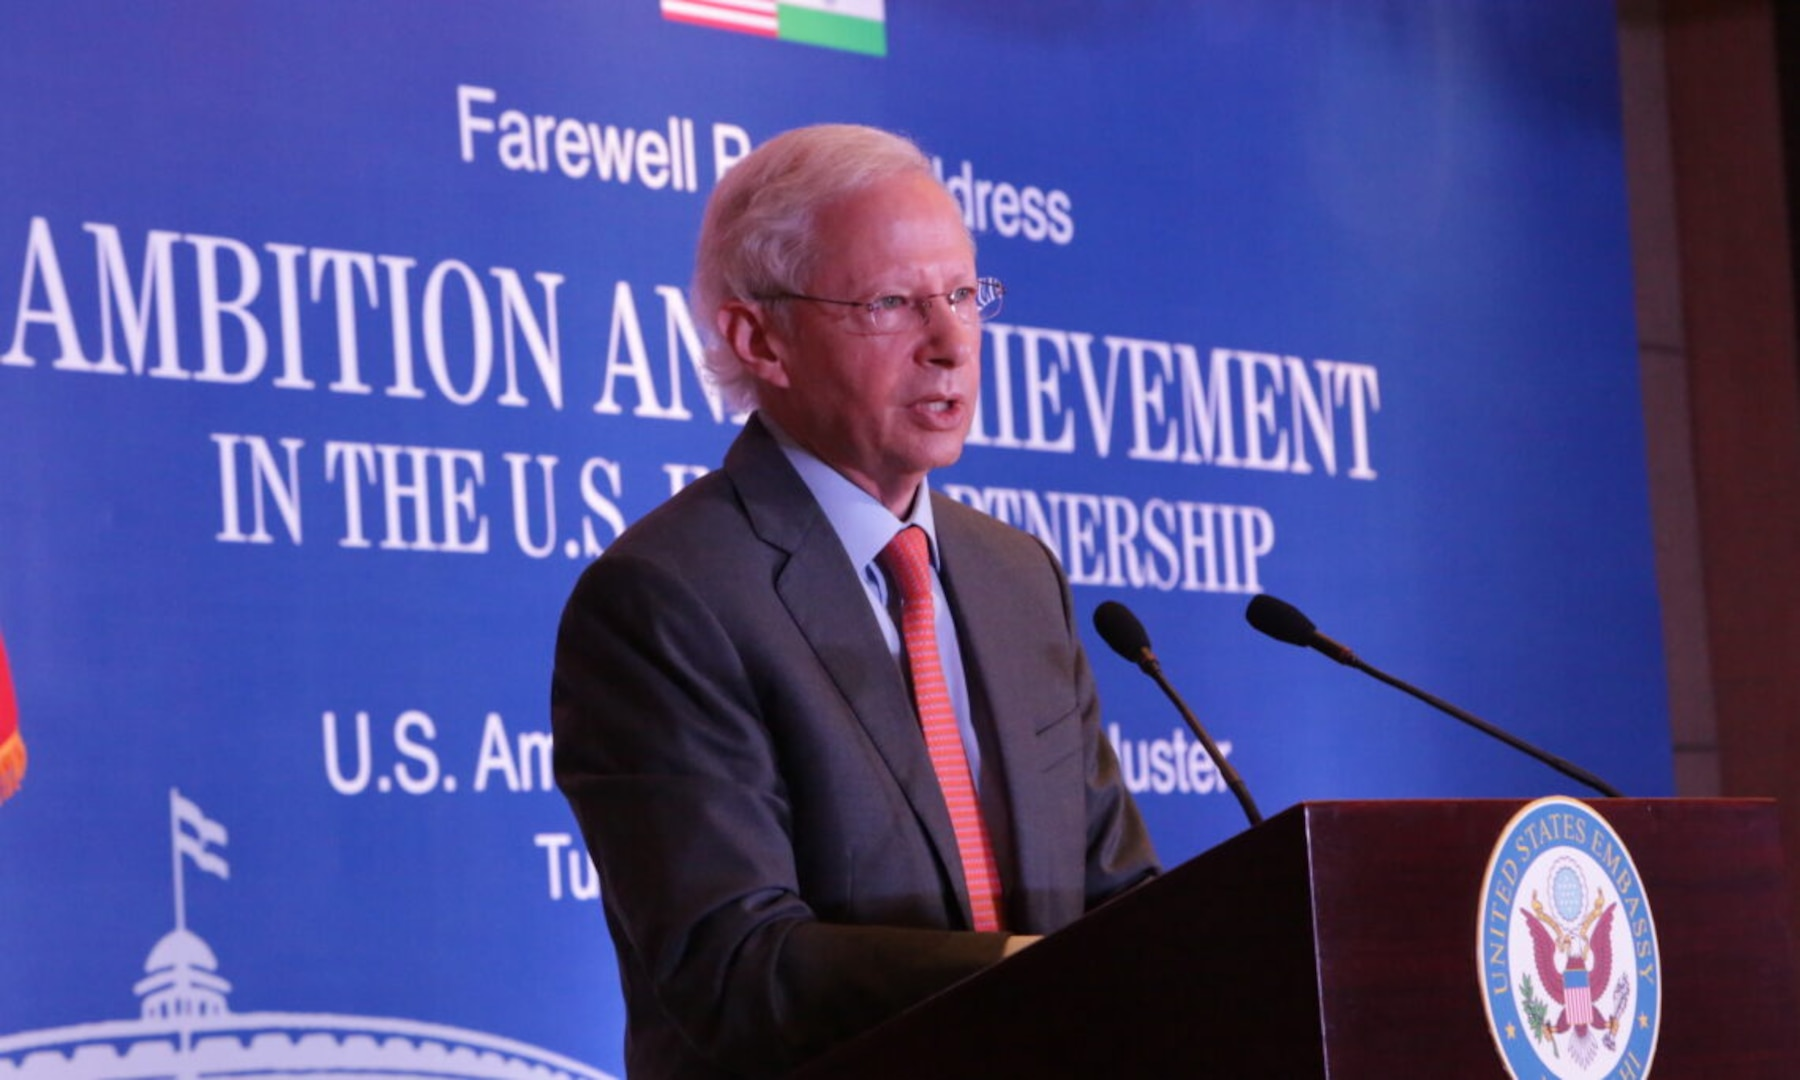 Ambition and Achievement in the U.S.-India Partnership